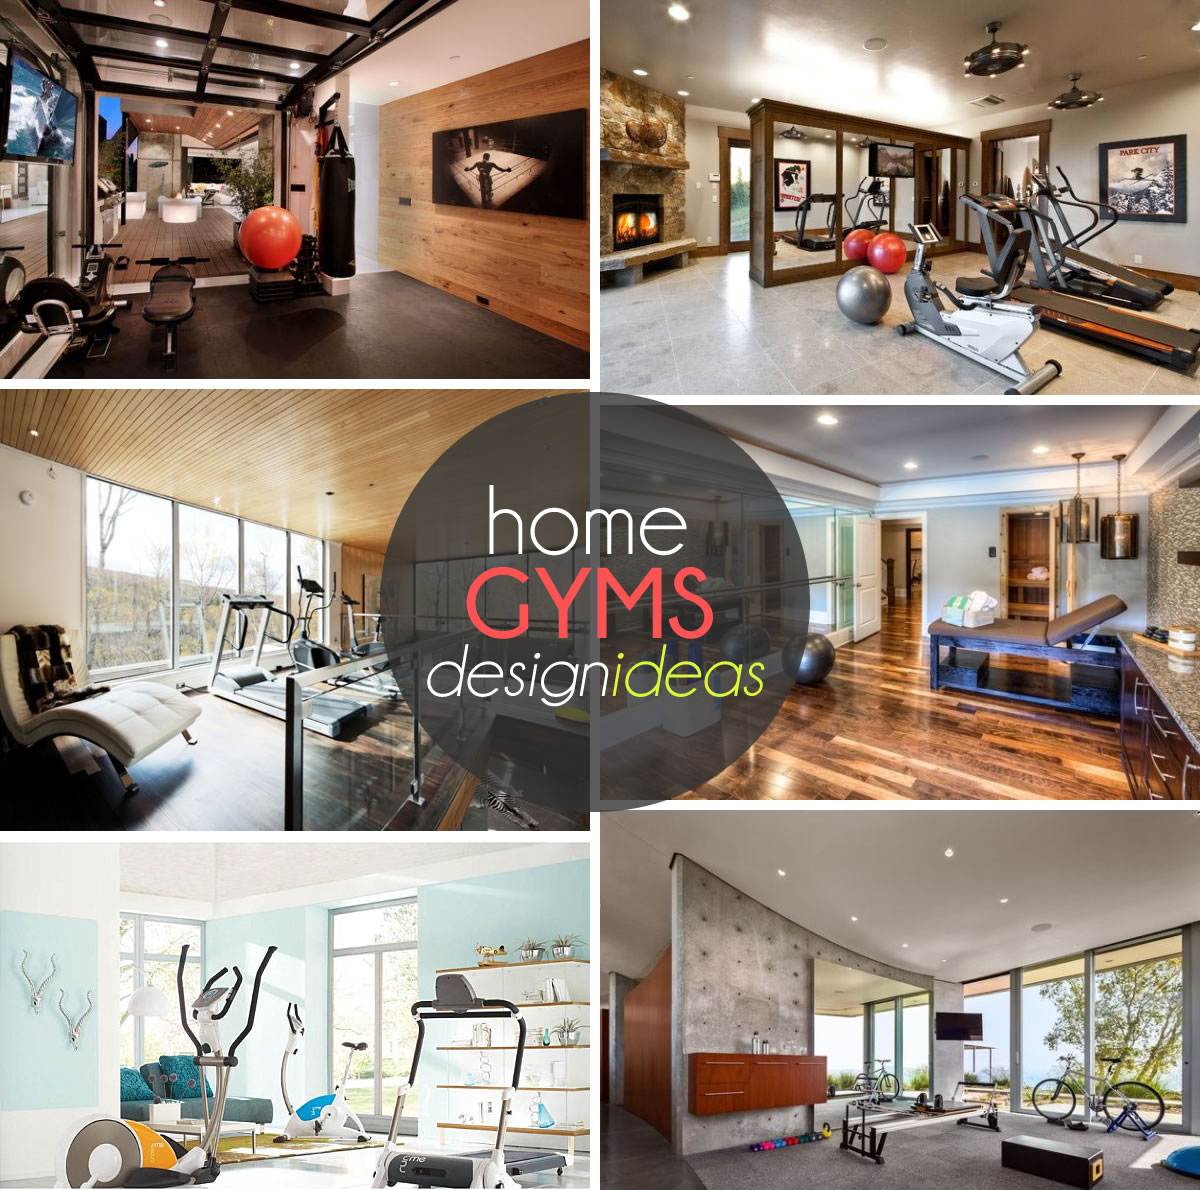 Attractive View In Gallery Exquisite Home Gym Design Ideas 70 Home Gym Design Ideas